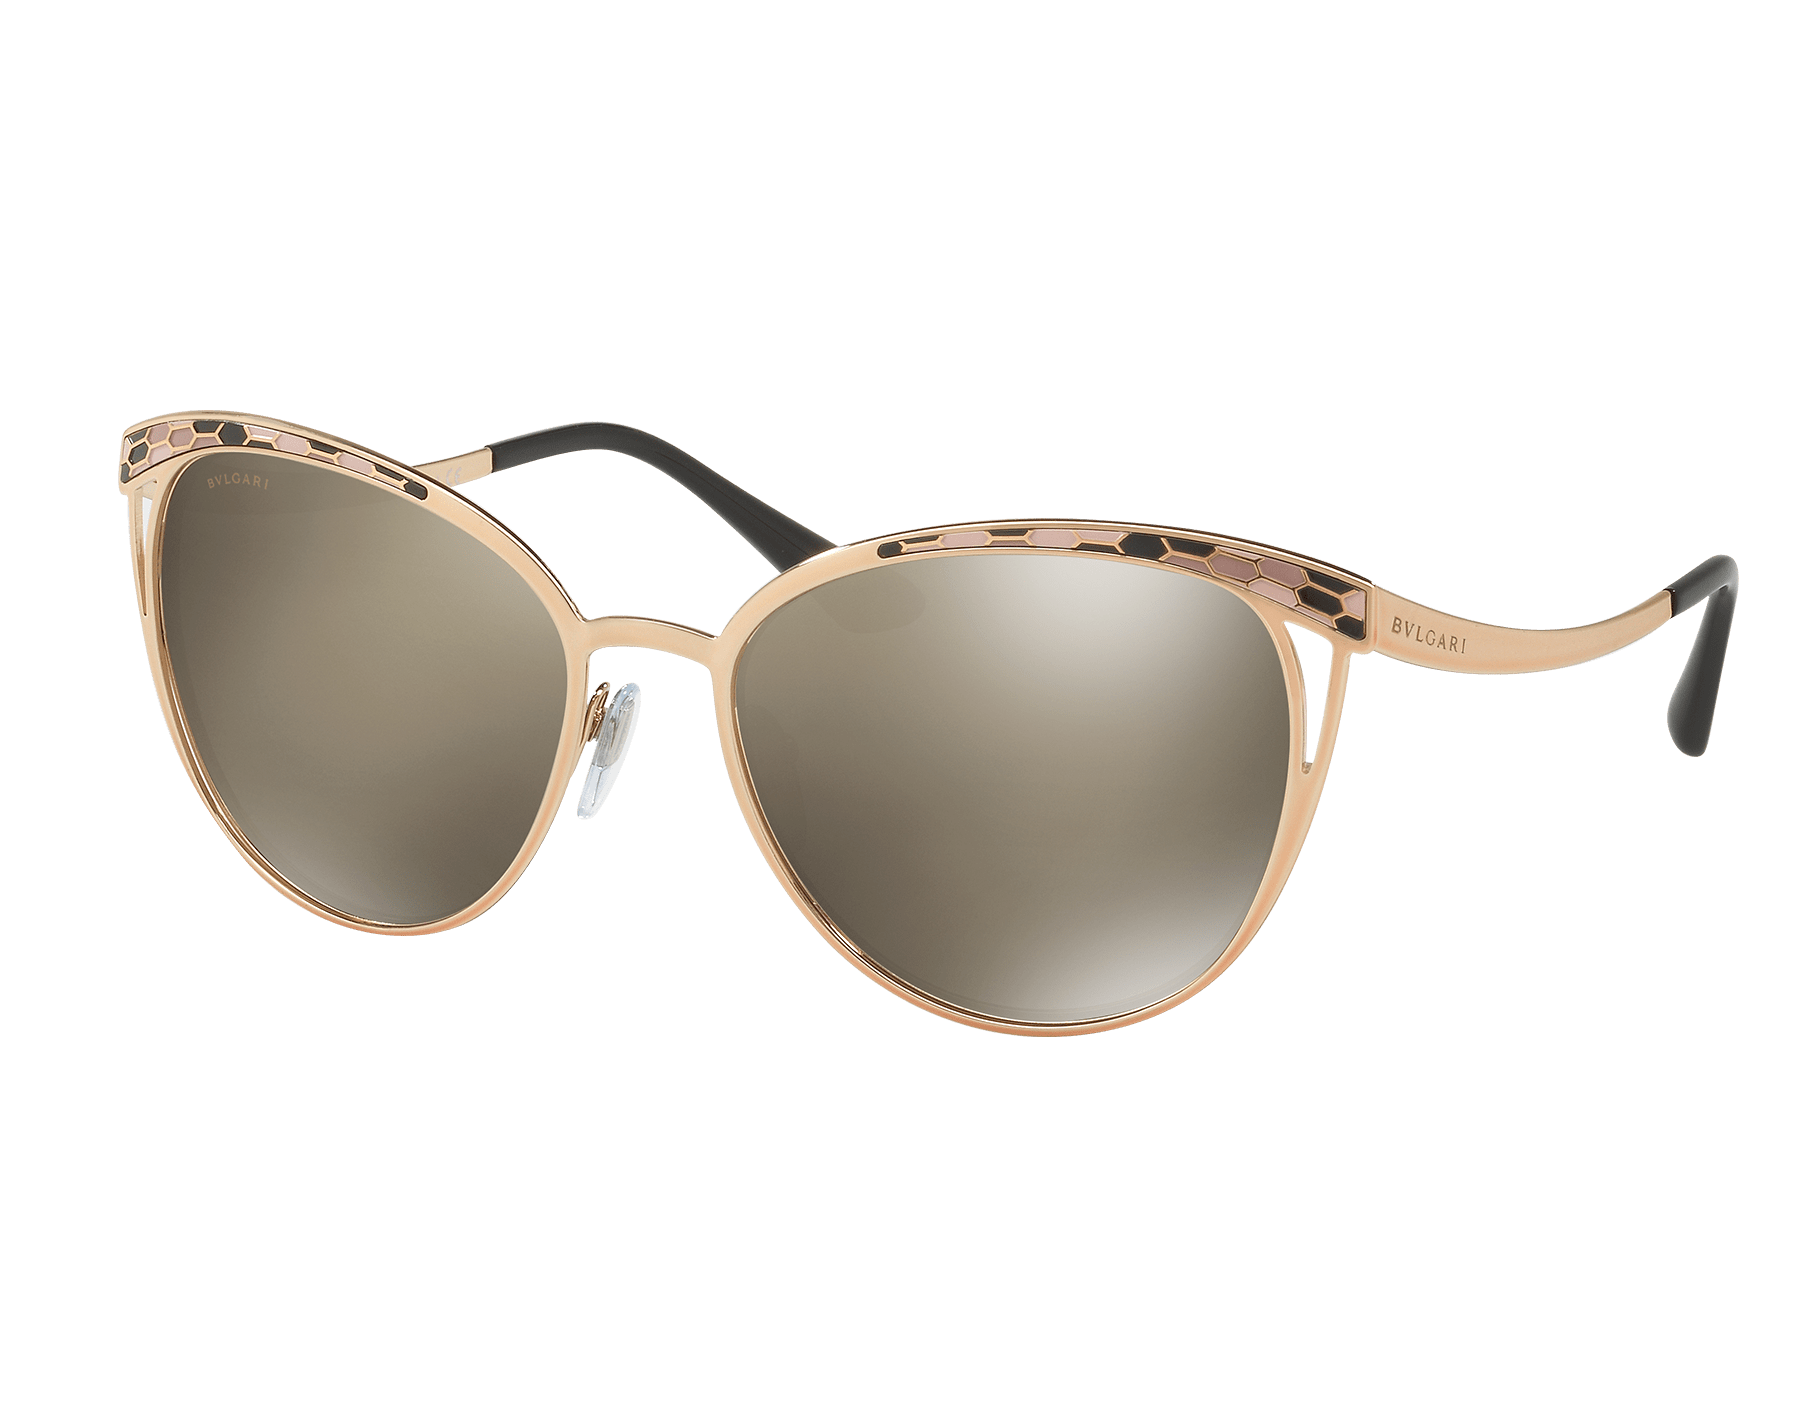 Serpenti 'Serpentine' contemporary cat-eye metal sunglasses. 903287 image 1